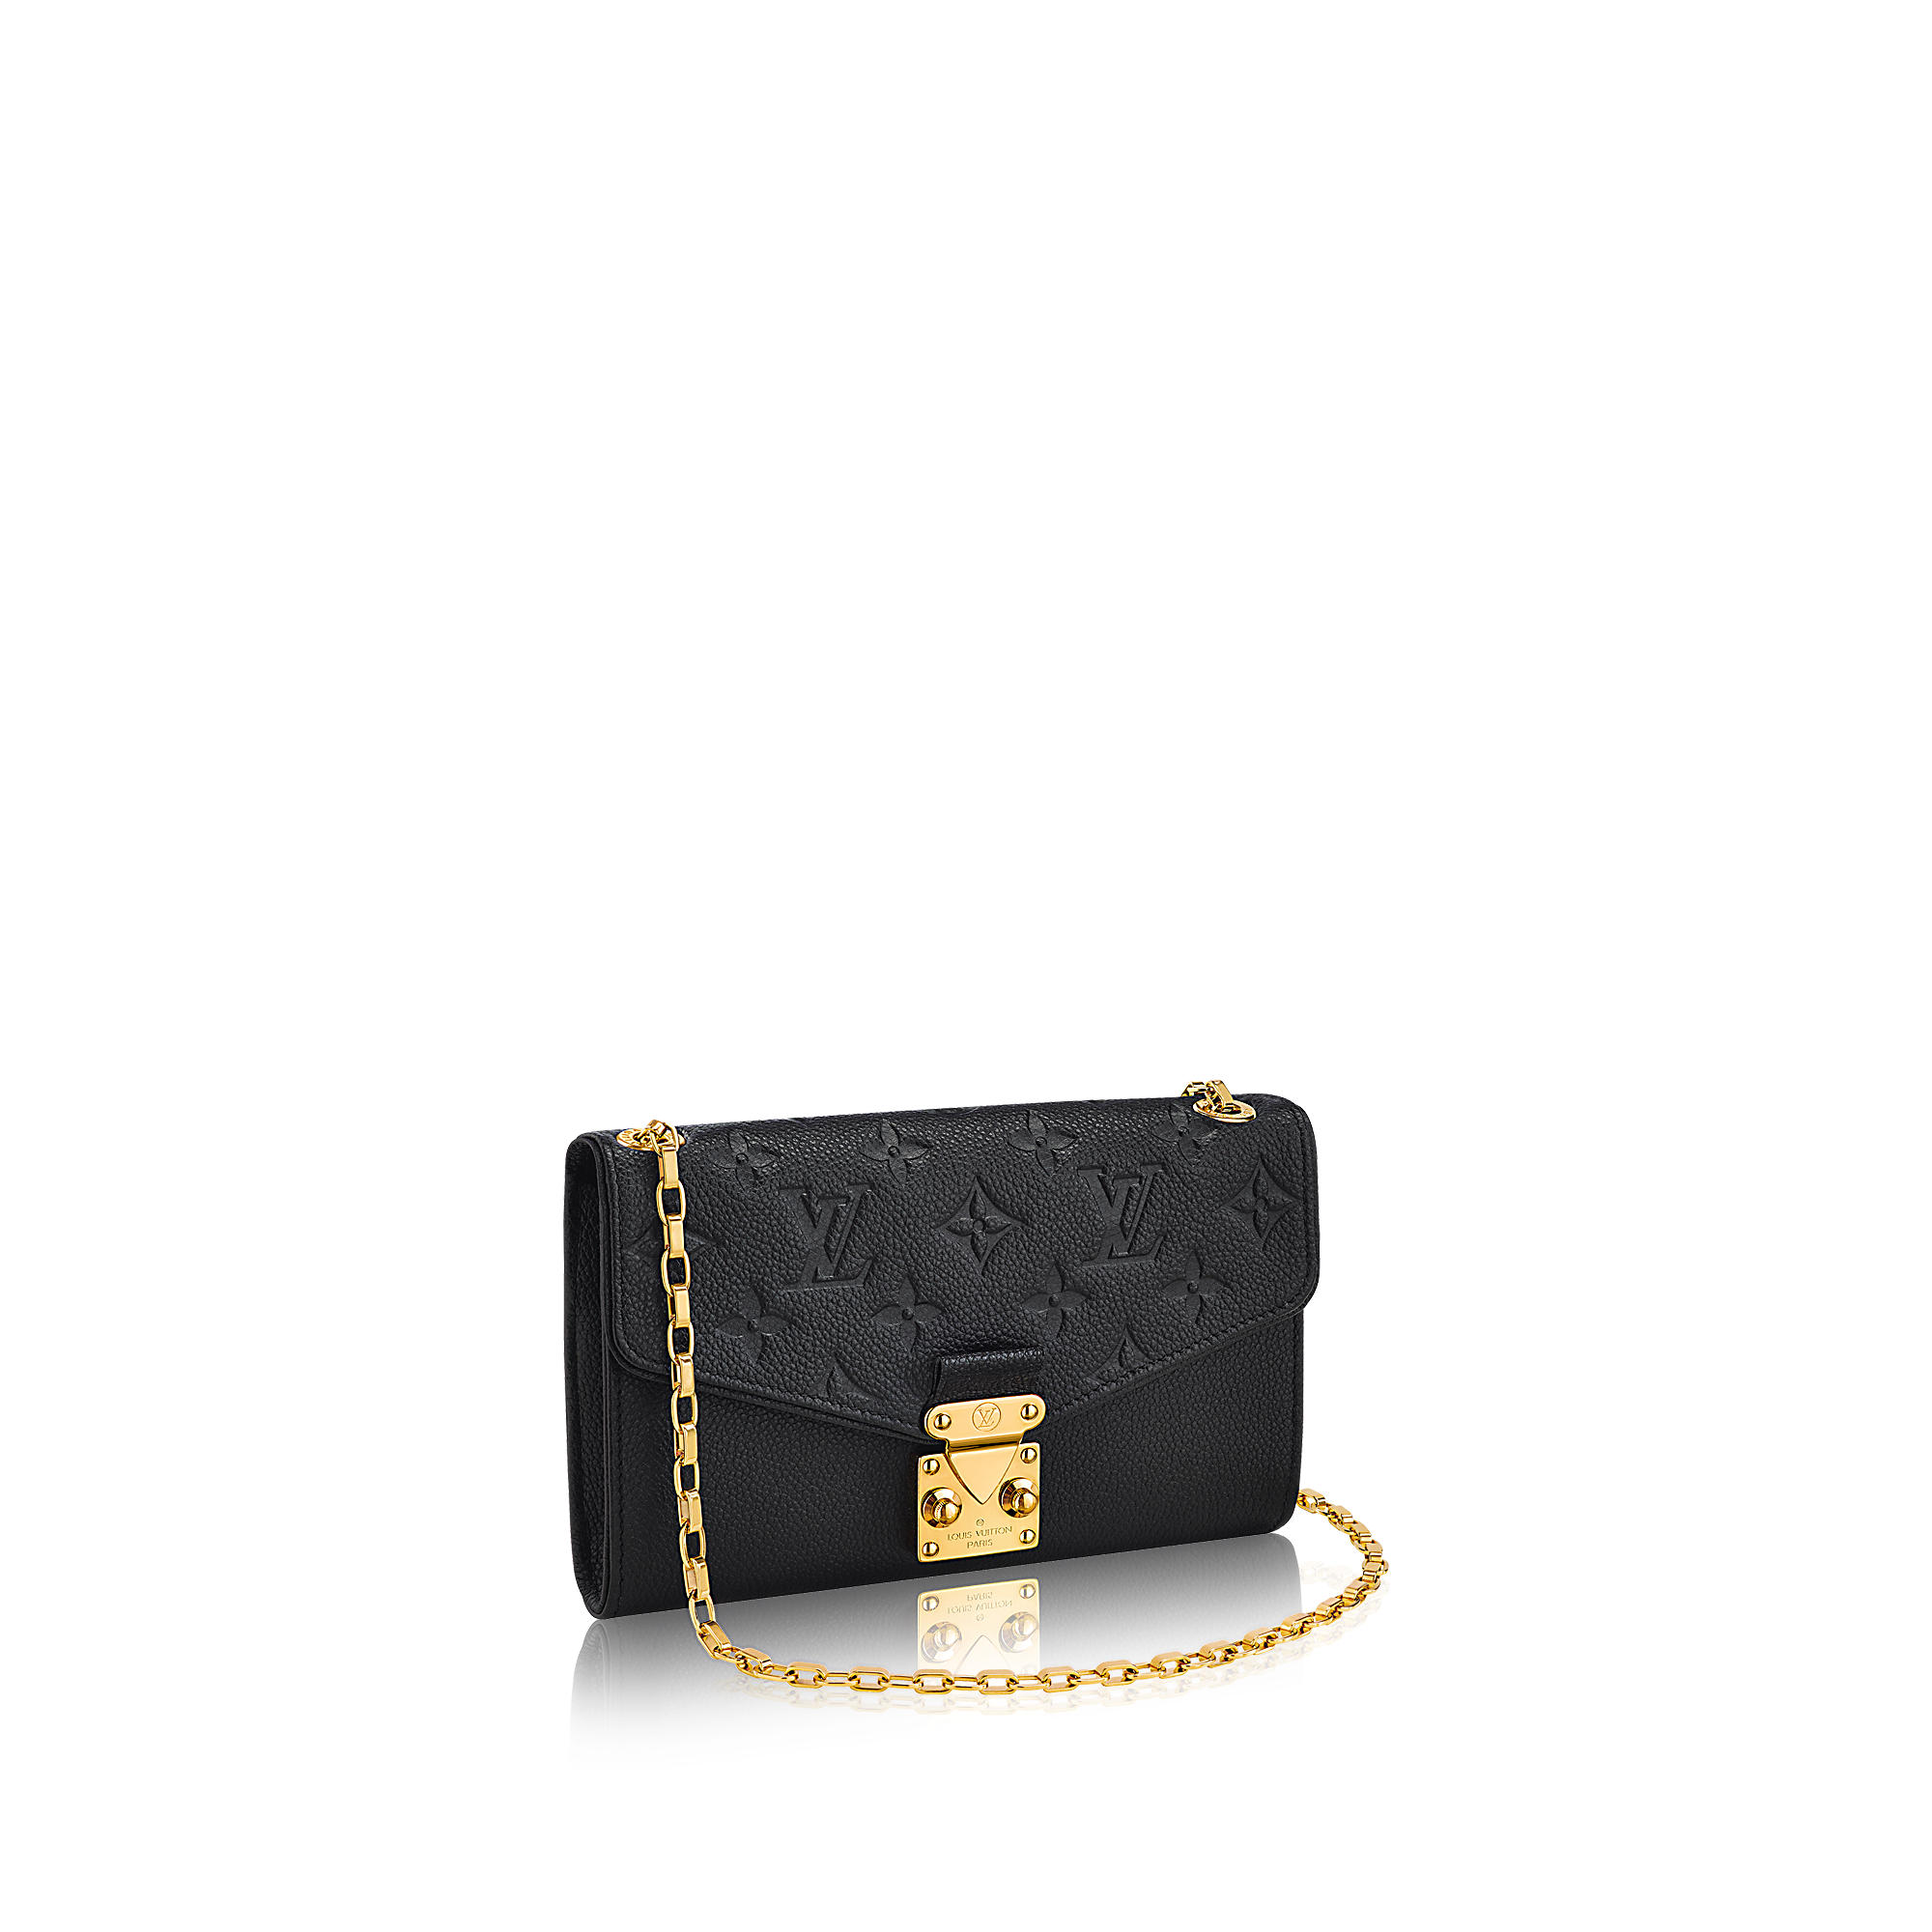 Pochette Saint Germain M60638